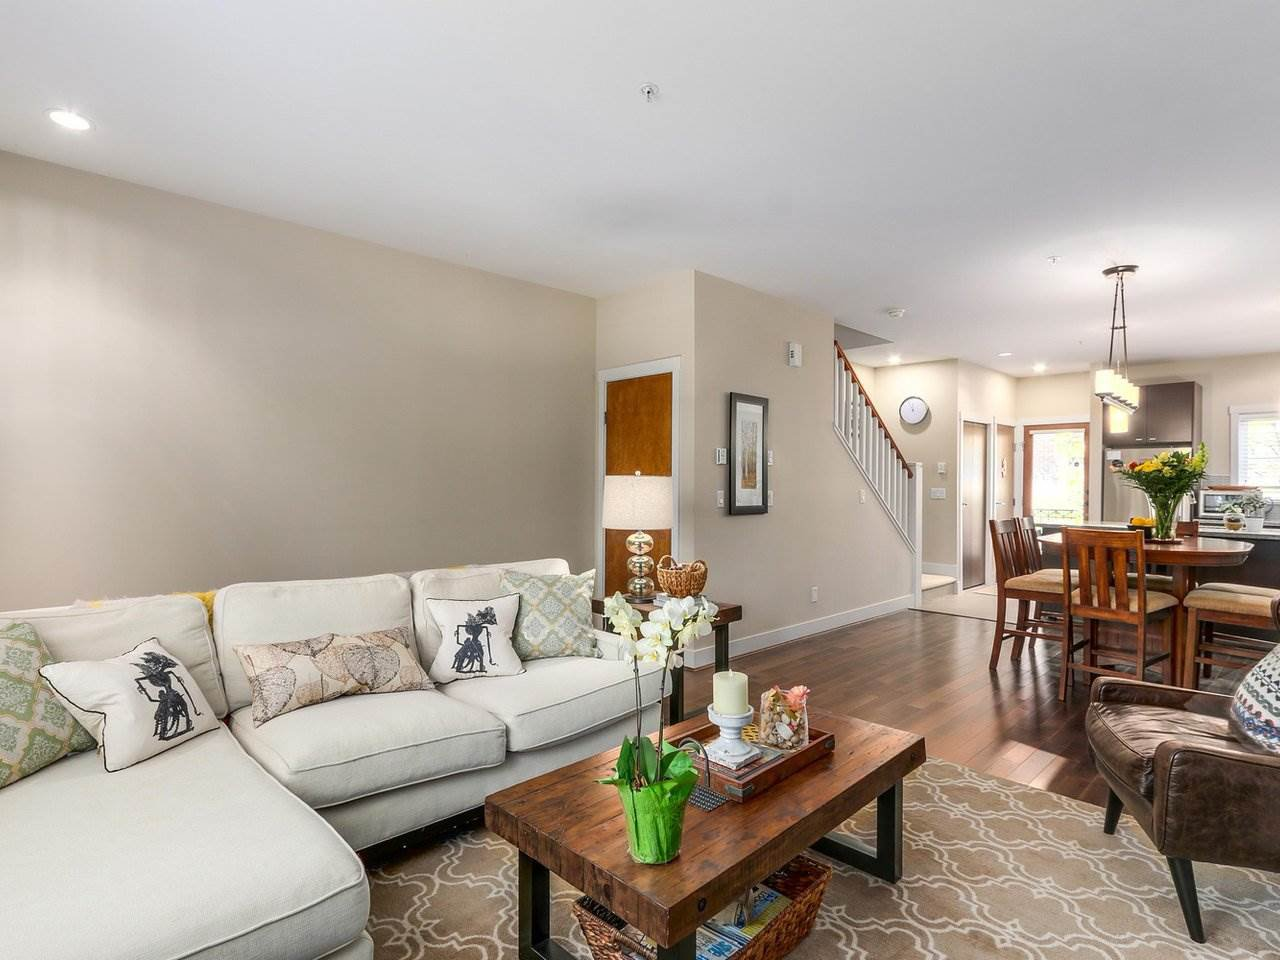 """Photo 4: Photos: 6181 OAK Street in Vancouver: South Granville Townhouse for sale in """"CARRINGTON"""" (Vancouver West)  : MLS®# R2295526"""